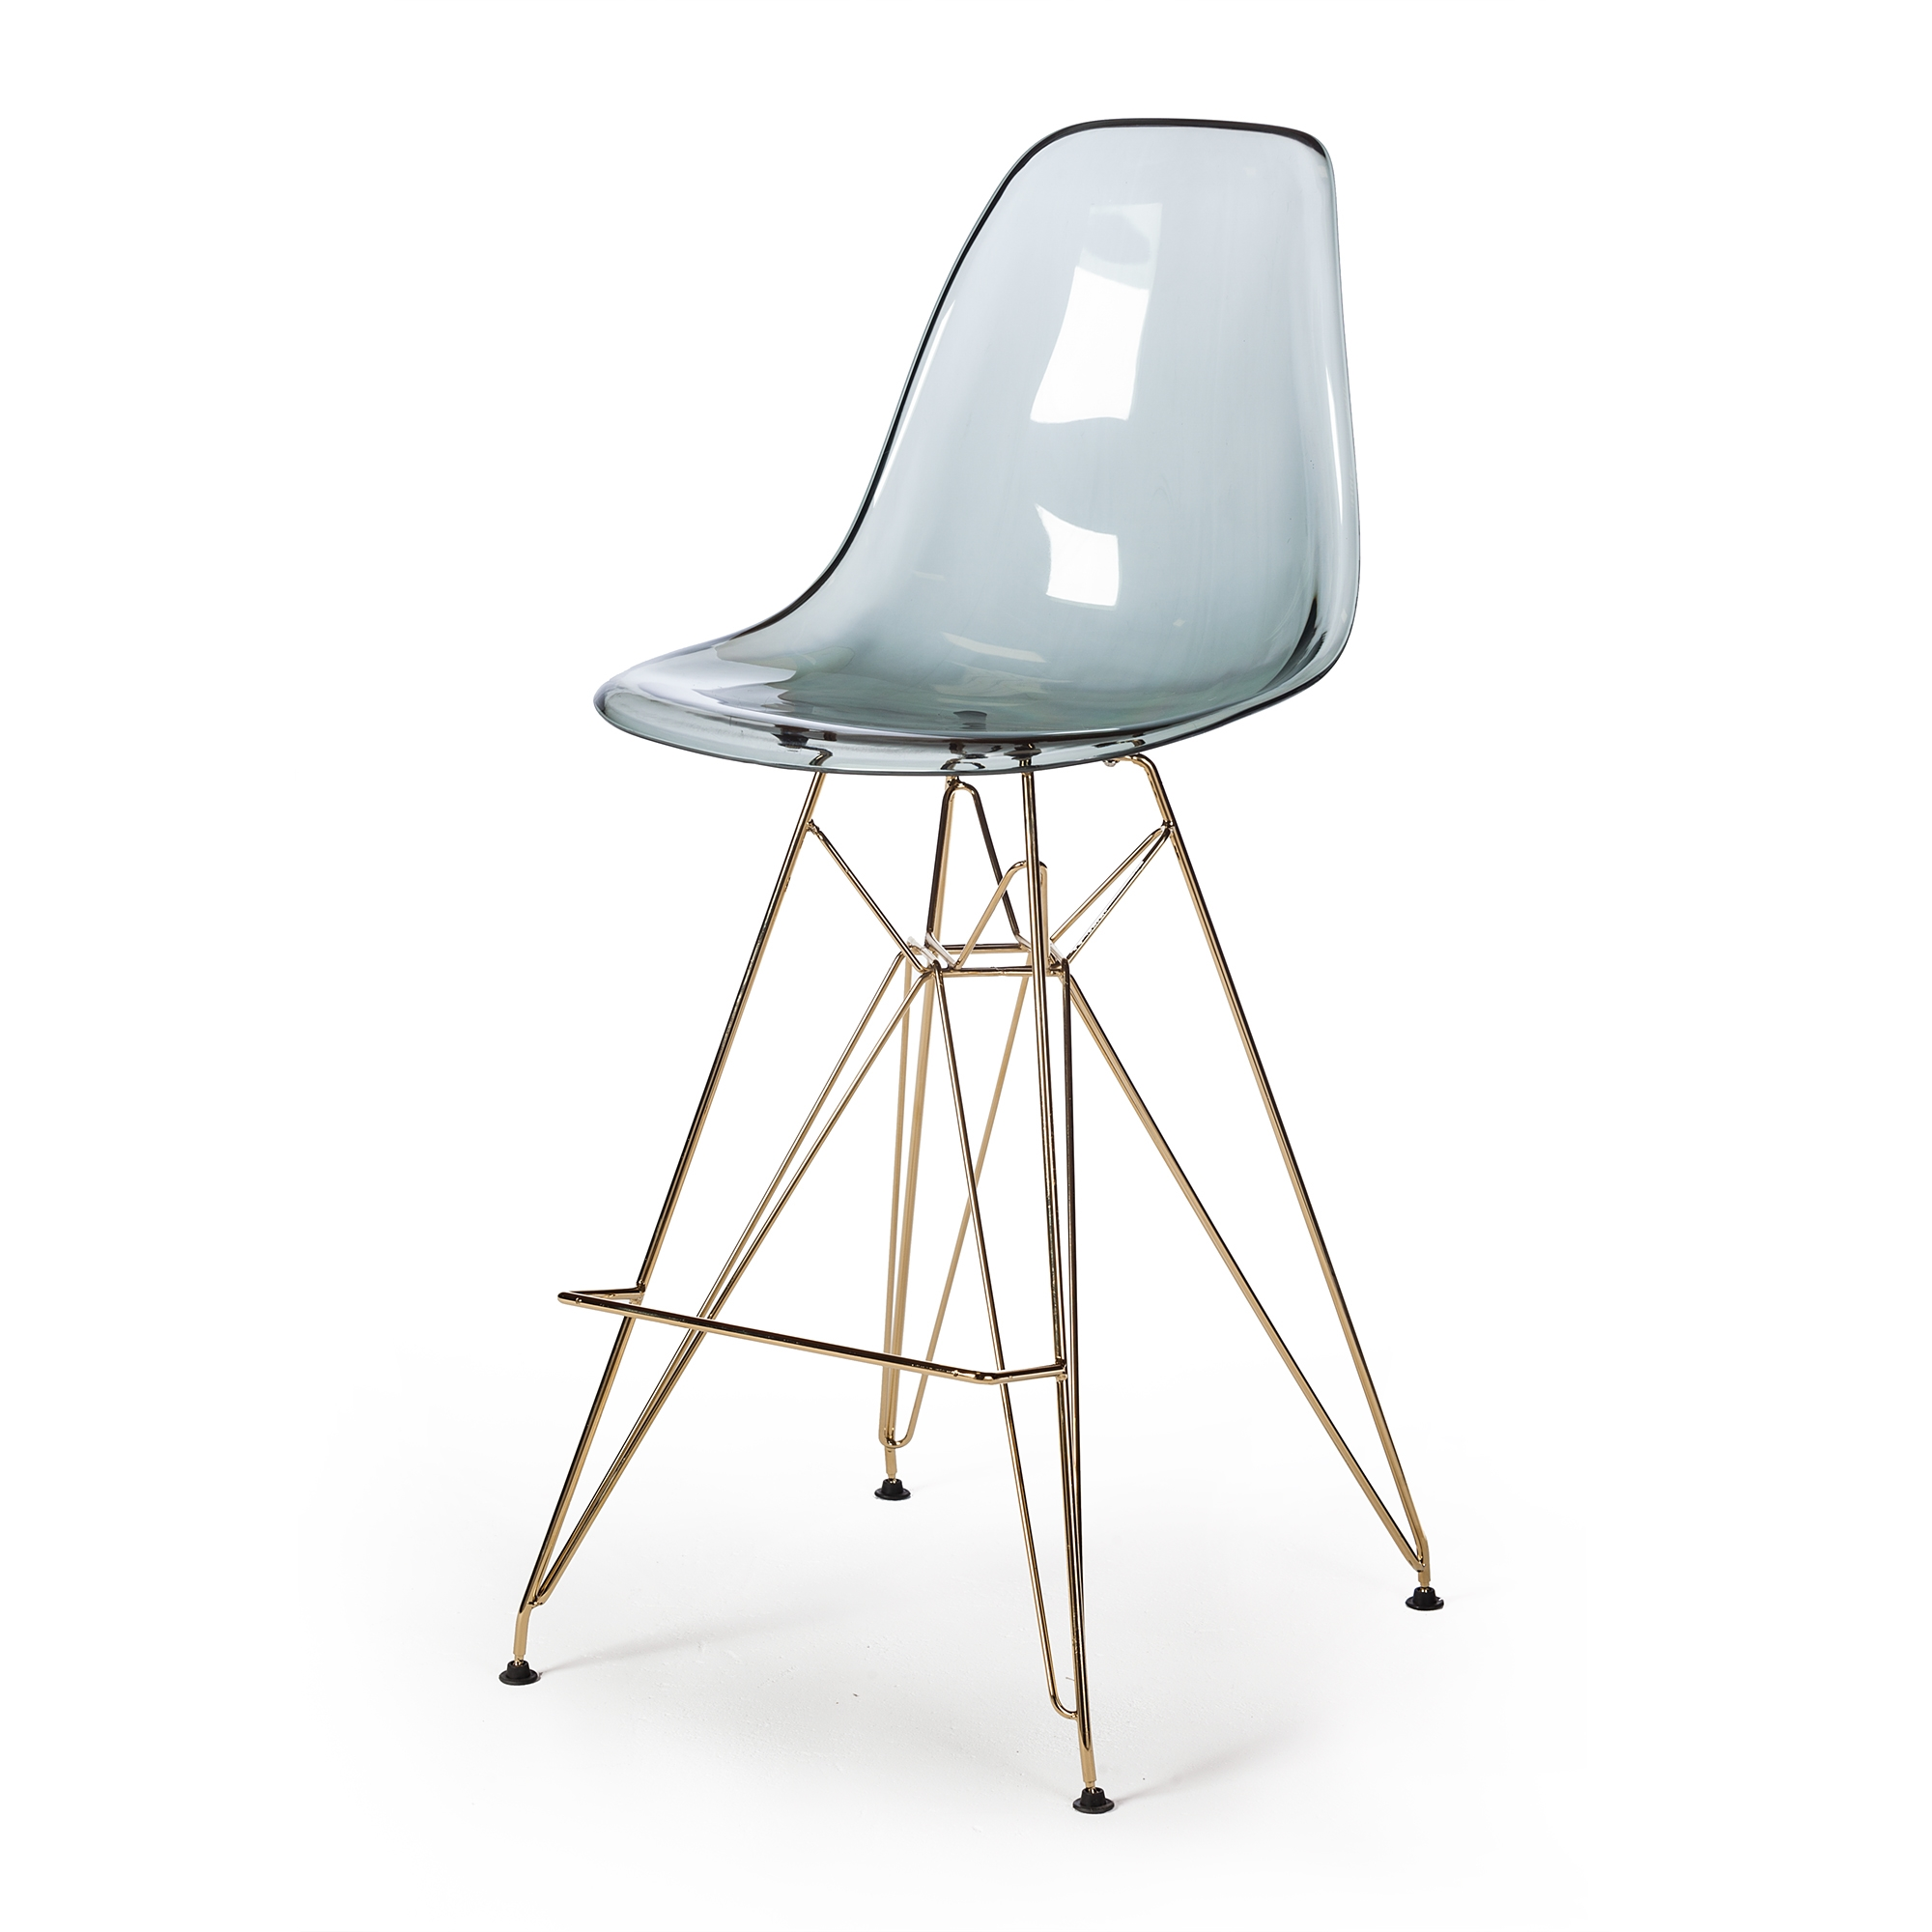 Molded Acrylic Bar Stool In Smoke And Gold Finish Legs The Khazana